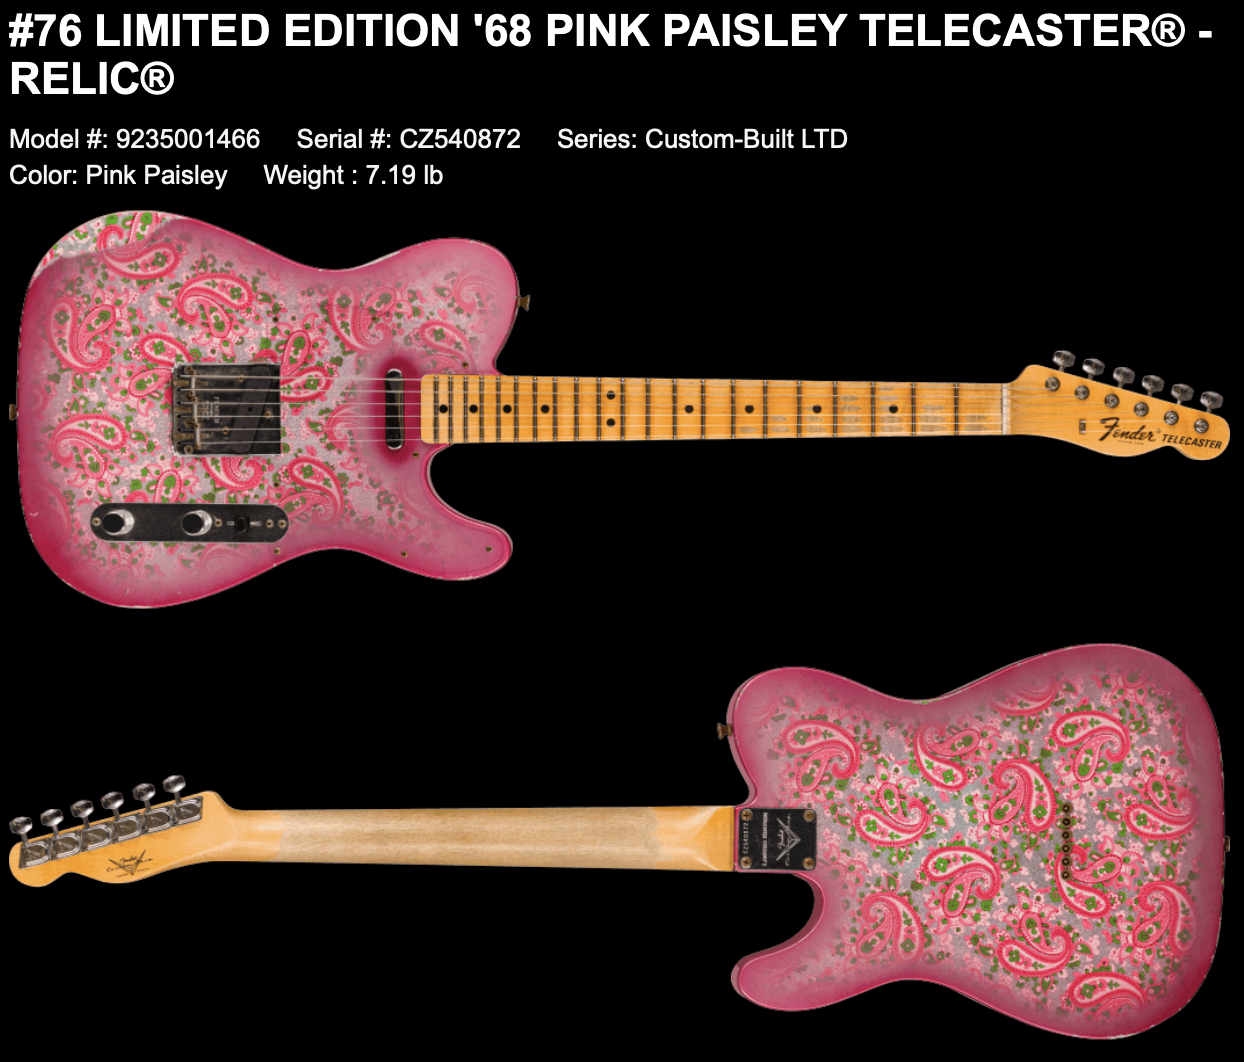 (PRE-ORDER) FENDER CUSTOM SHOP LIMITED EDITION '68 PINK PAISLEY TELECASTER RELIC